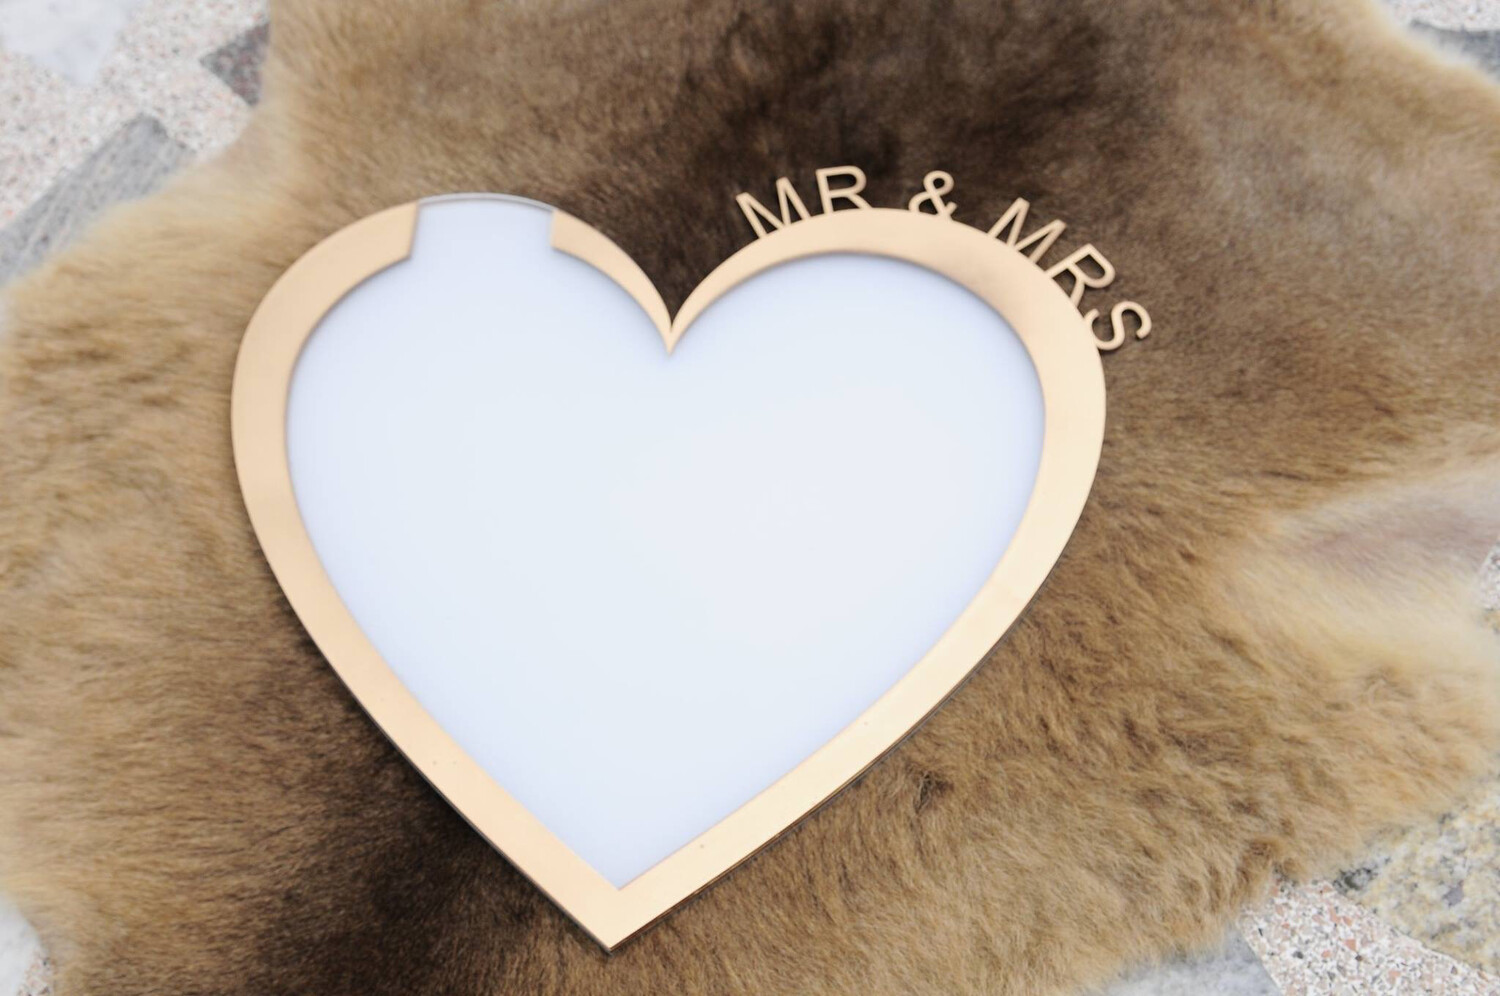 Personalized name and date Drop Box Acrylic Frame Wedding Hearts Sweet Guest Book, Custom Guest Book Ideas For Wedding